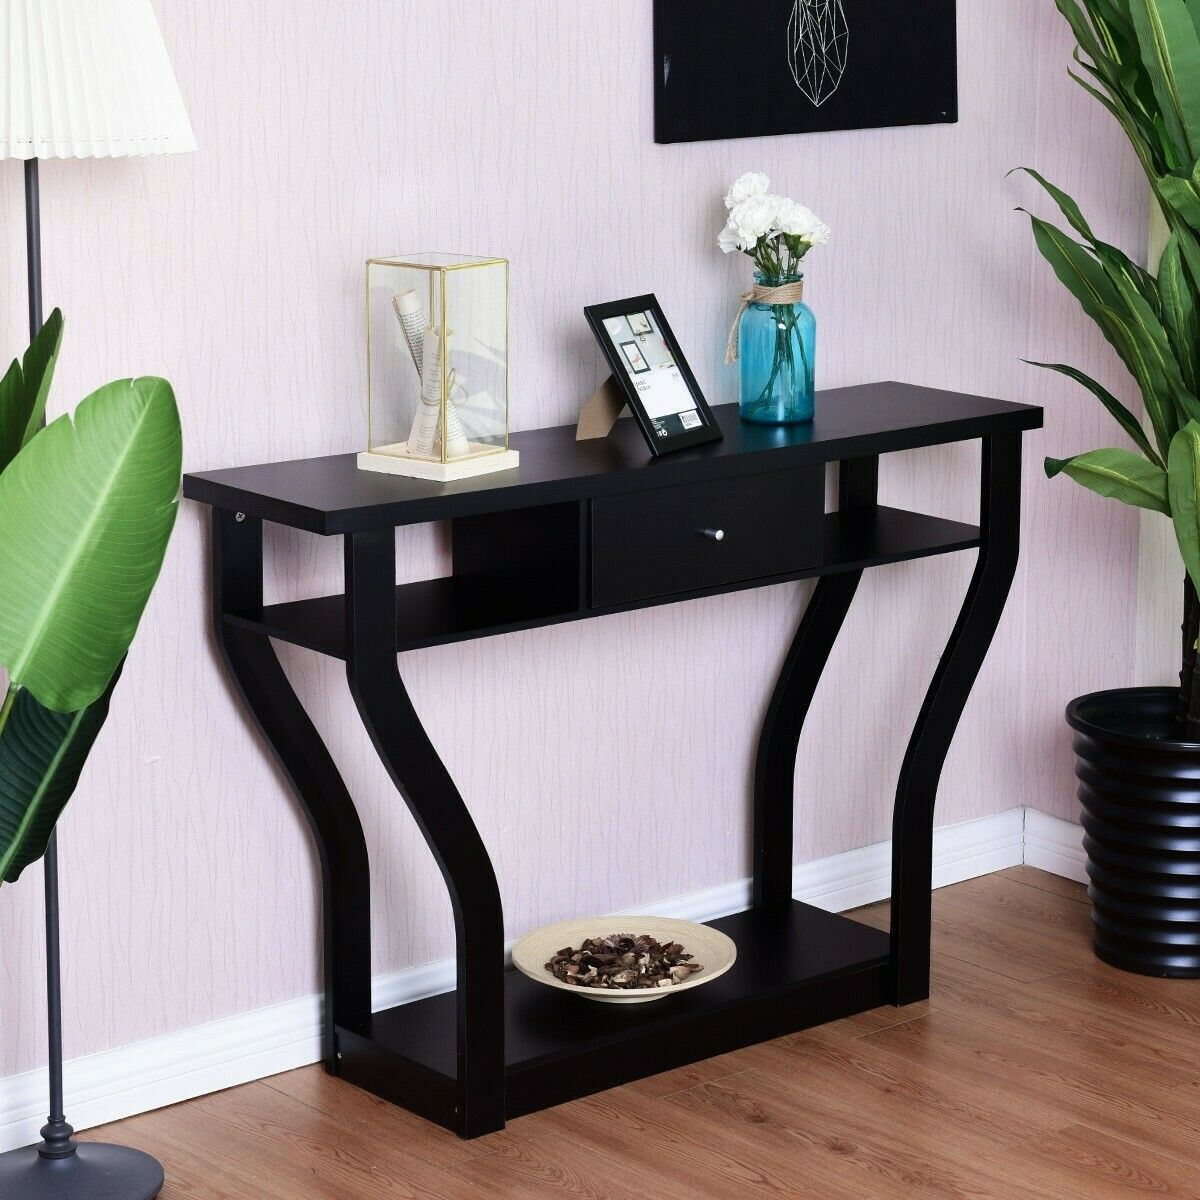 Console Table With Drawers Storage Hall Entry Entryway Black